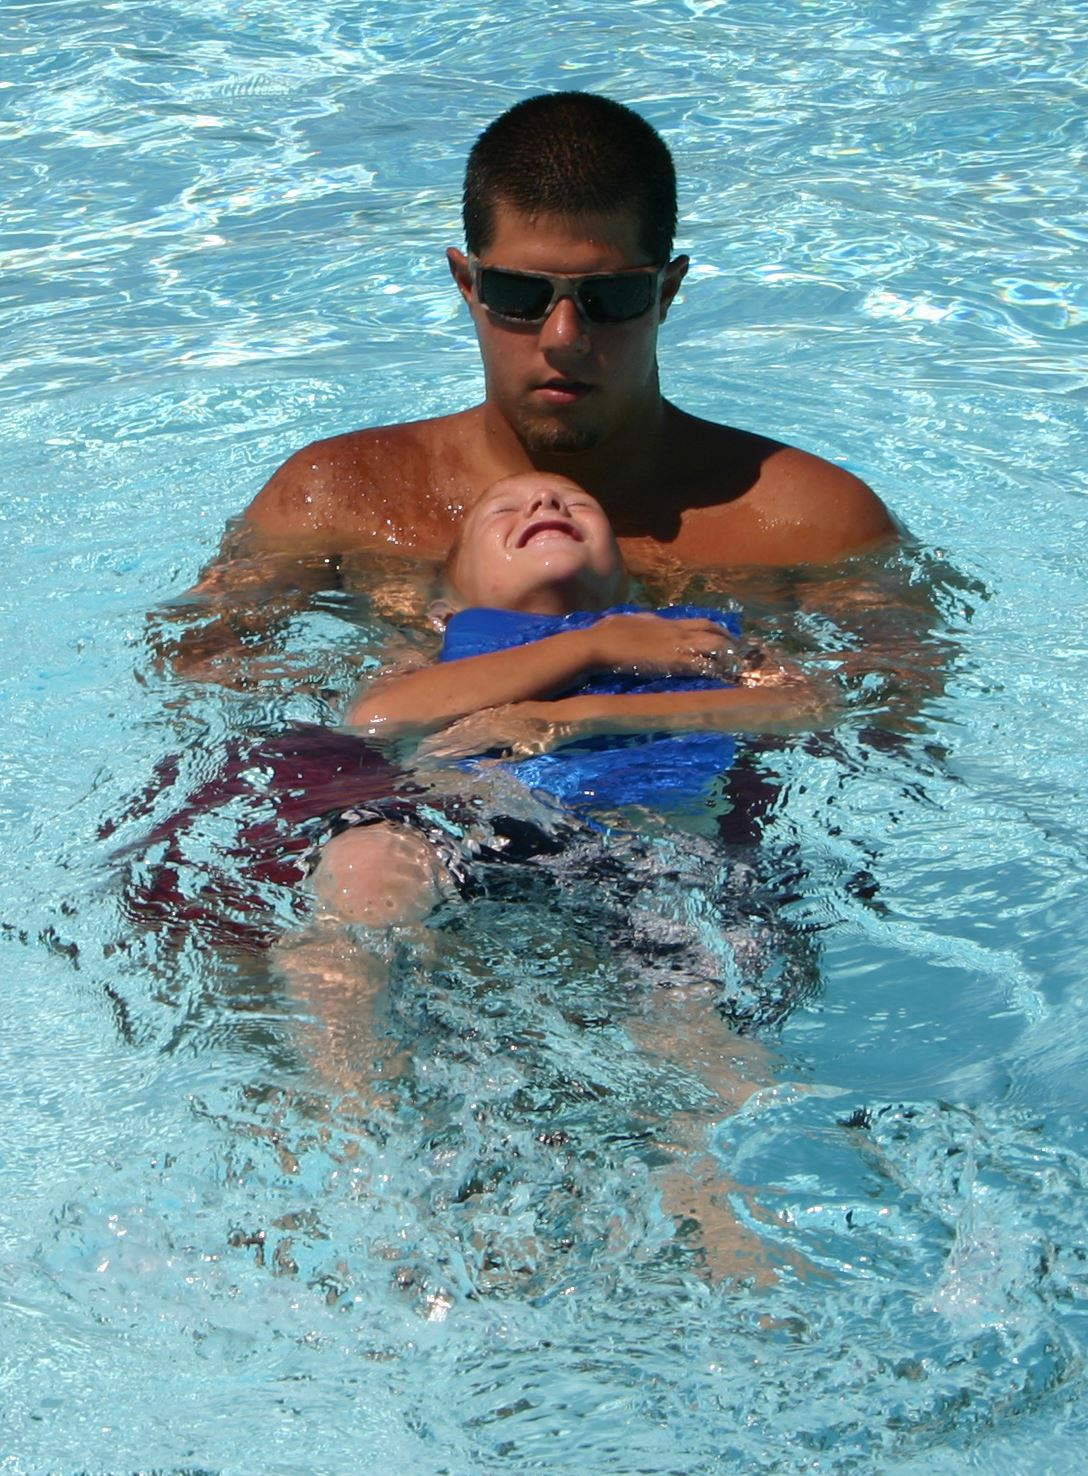 Swim instructor and child during swim lesson